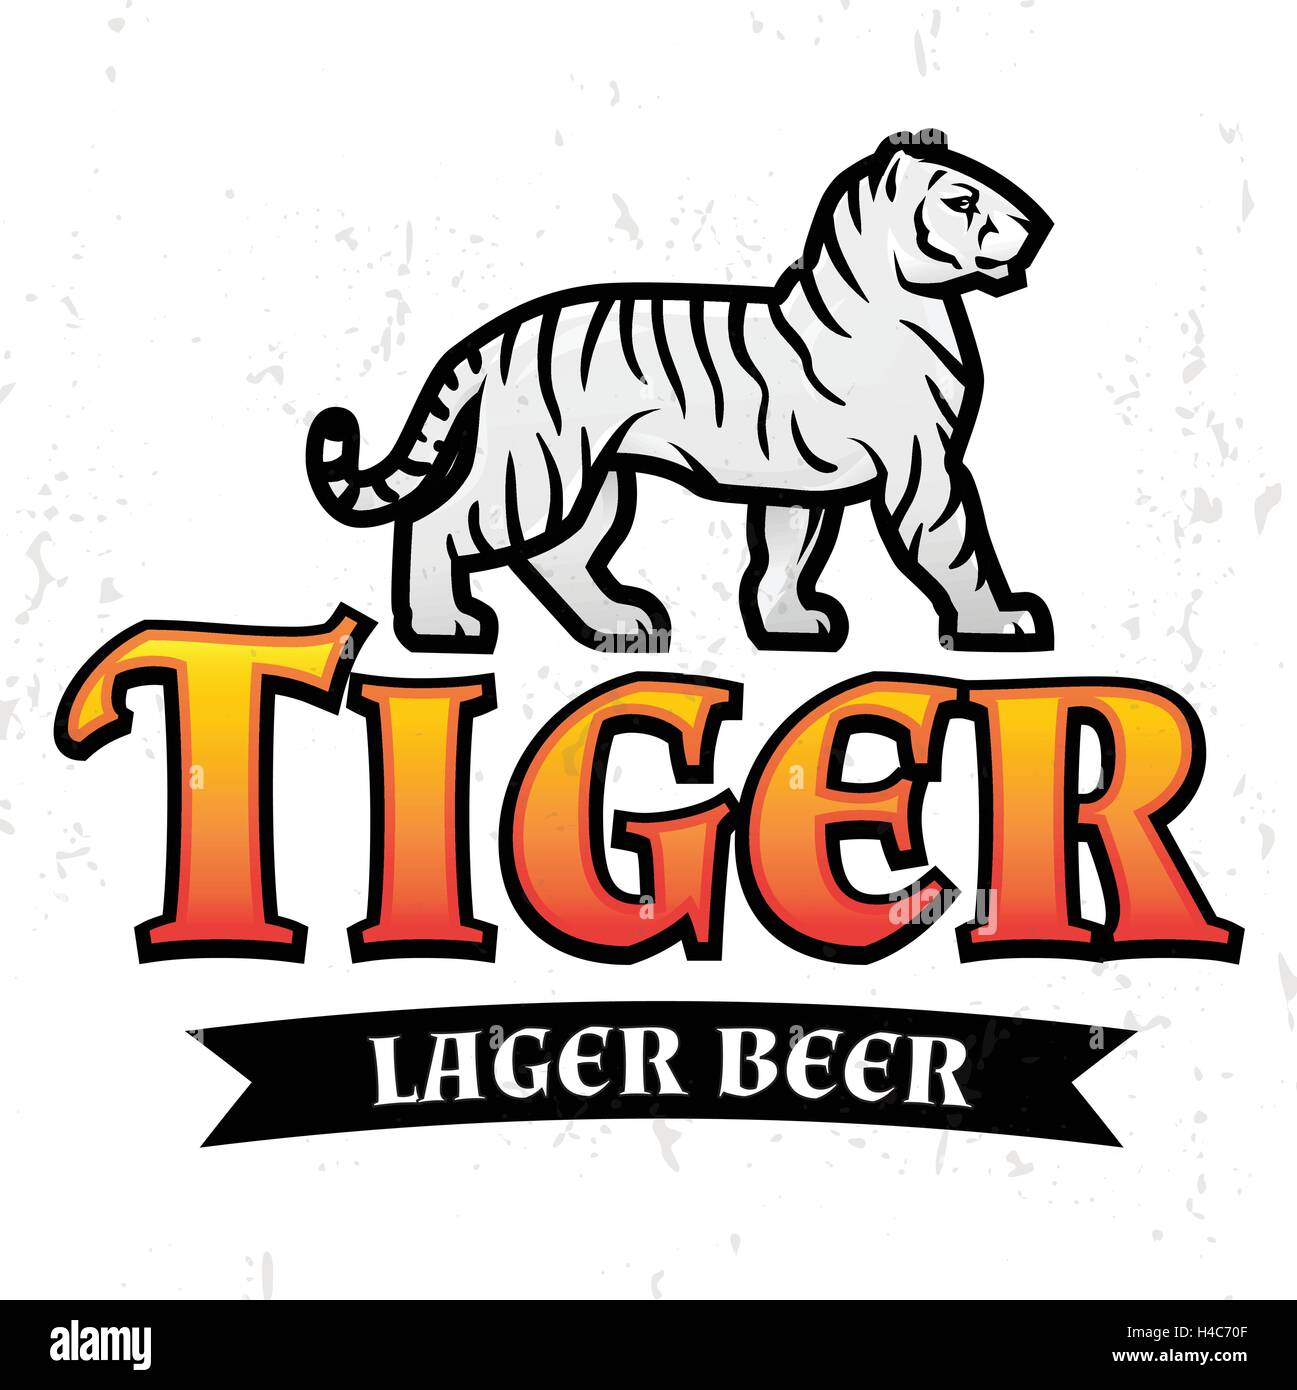 bengal tiger beer logo vector lager label design template predator insignia sport team